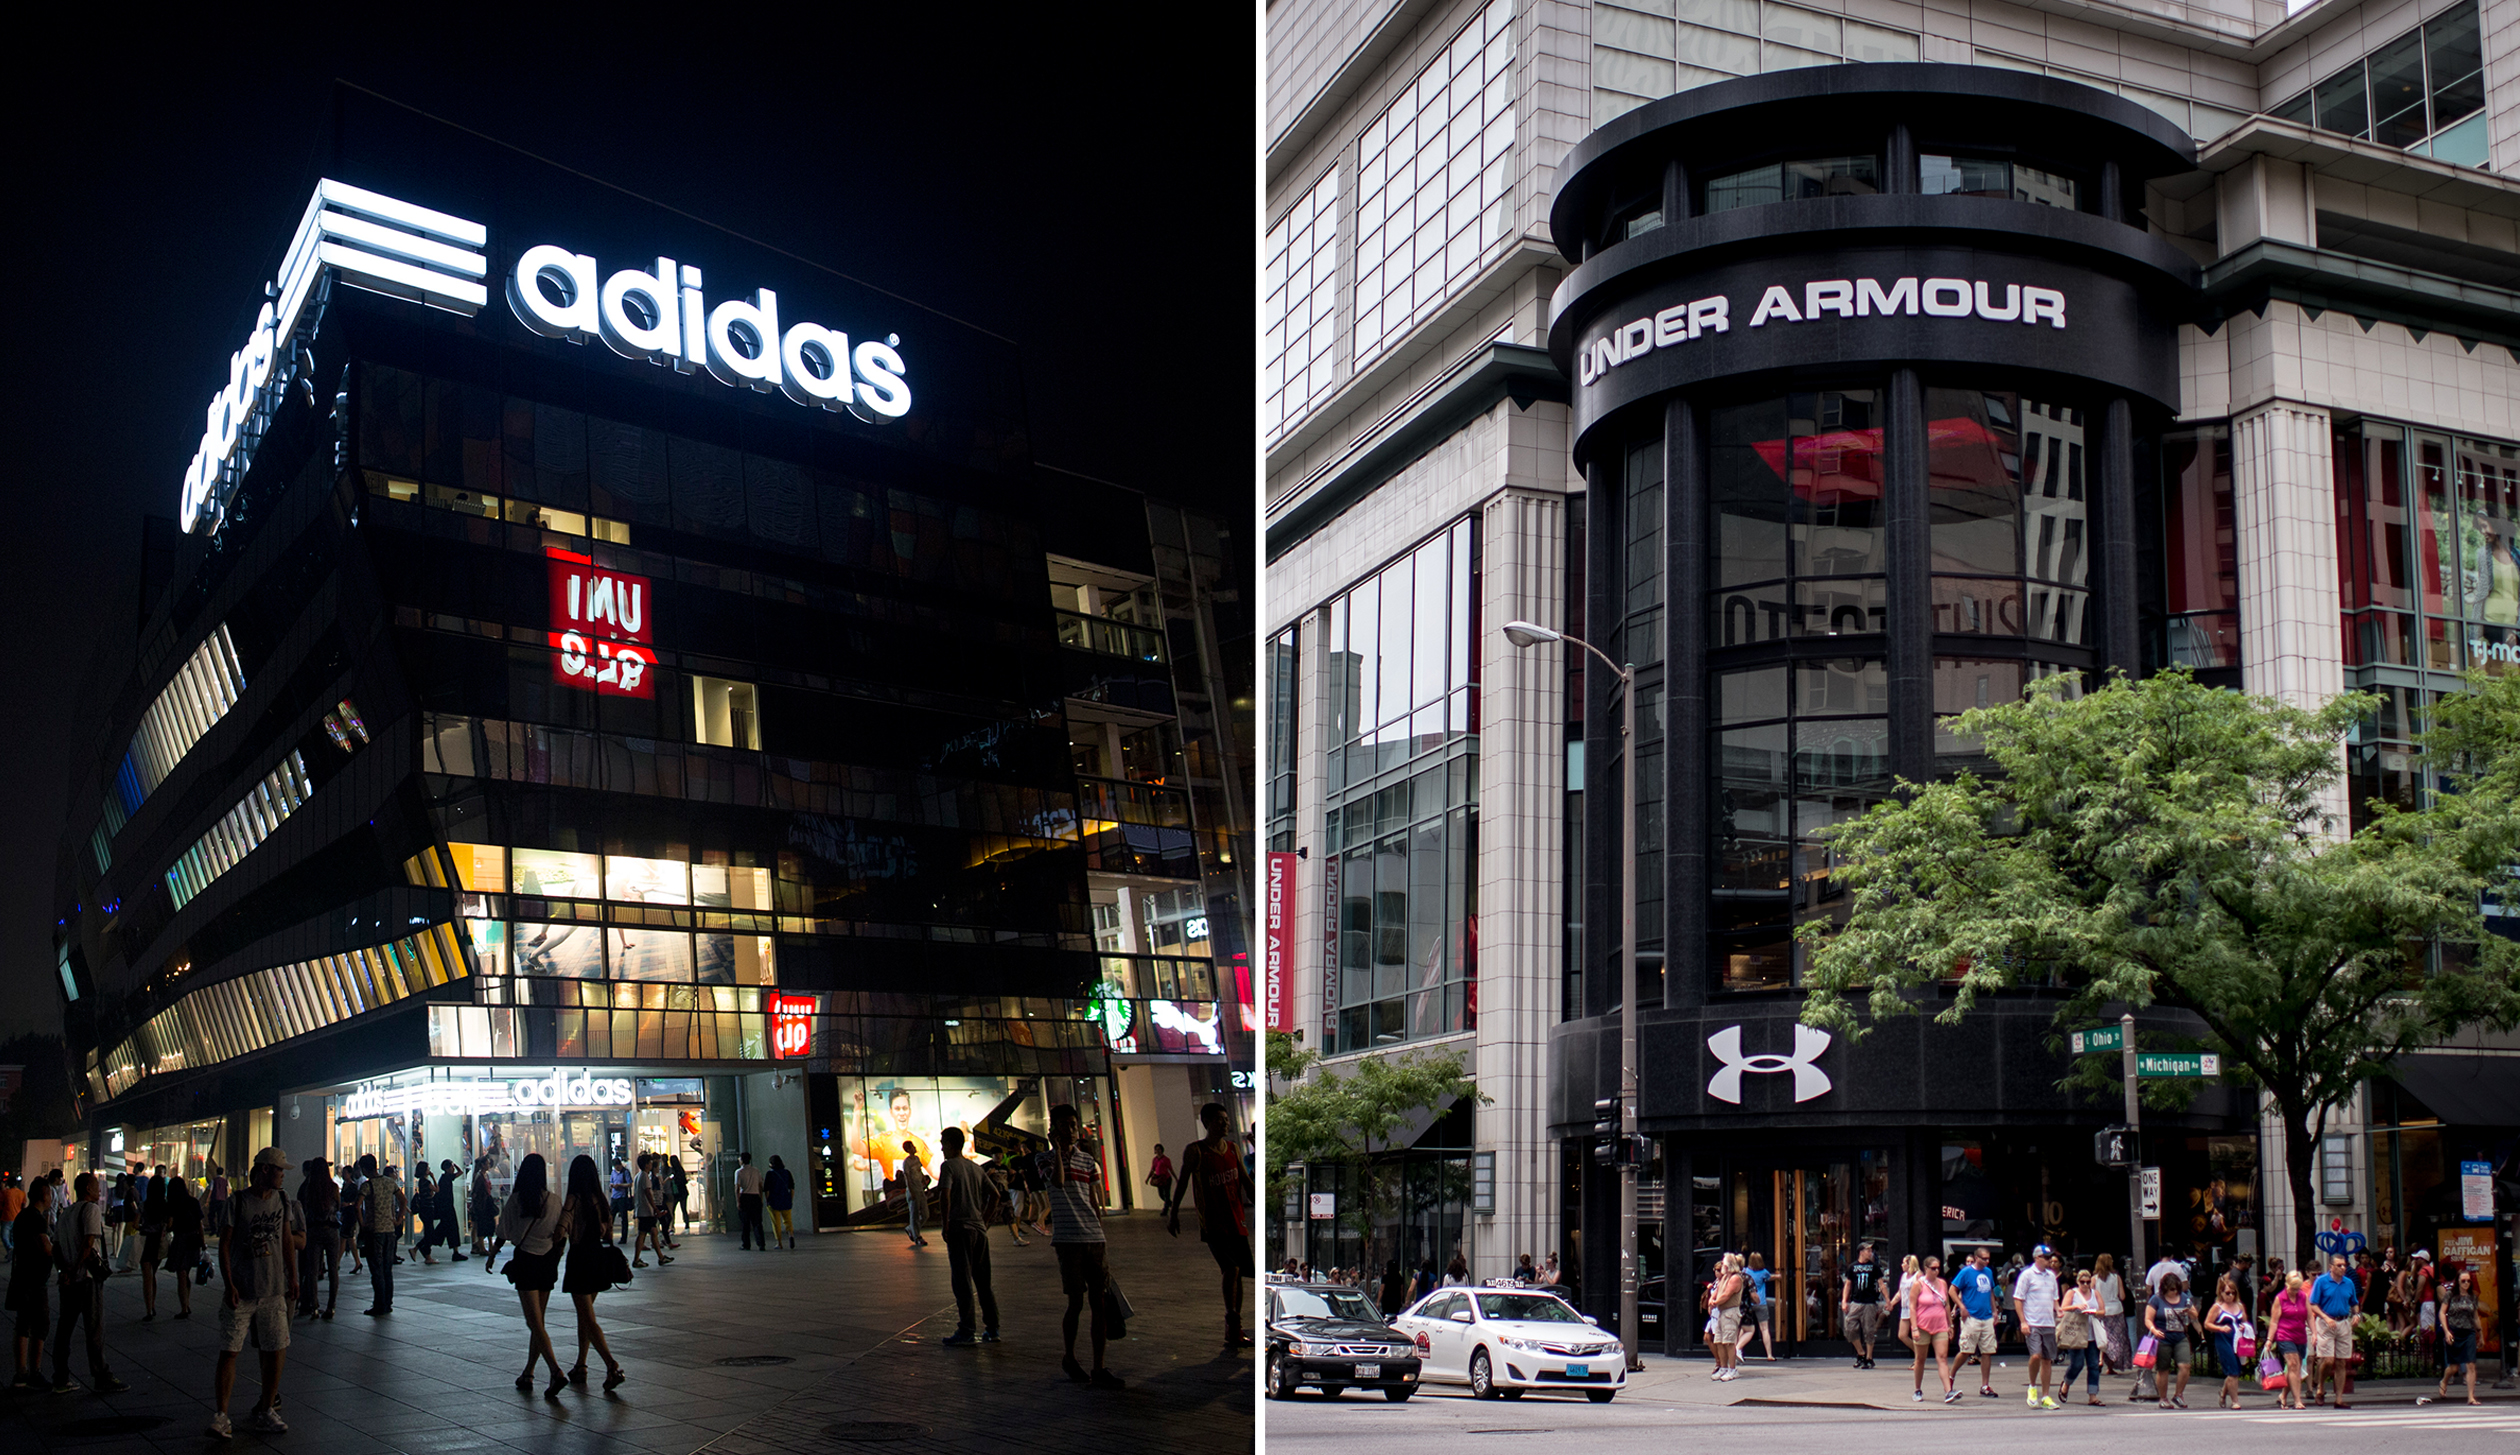 The World's Largest Adidas Store Opens Up In Chicago